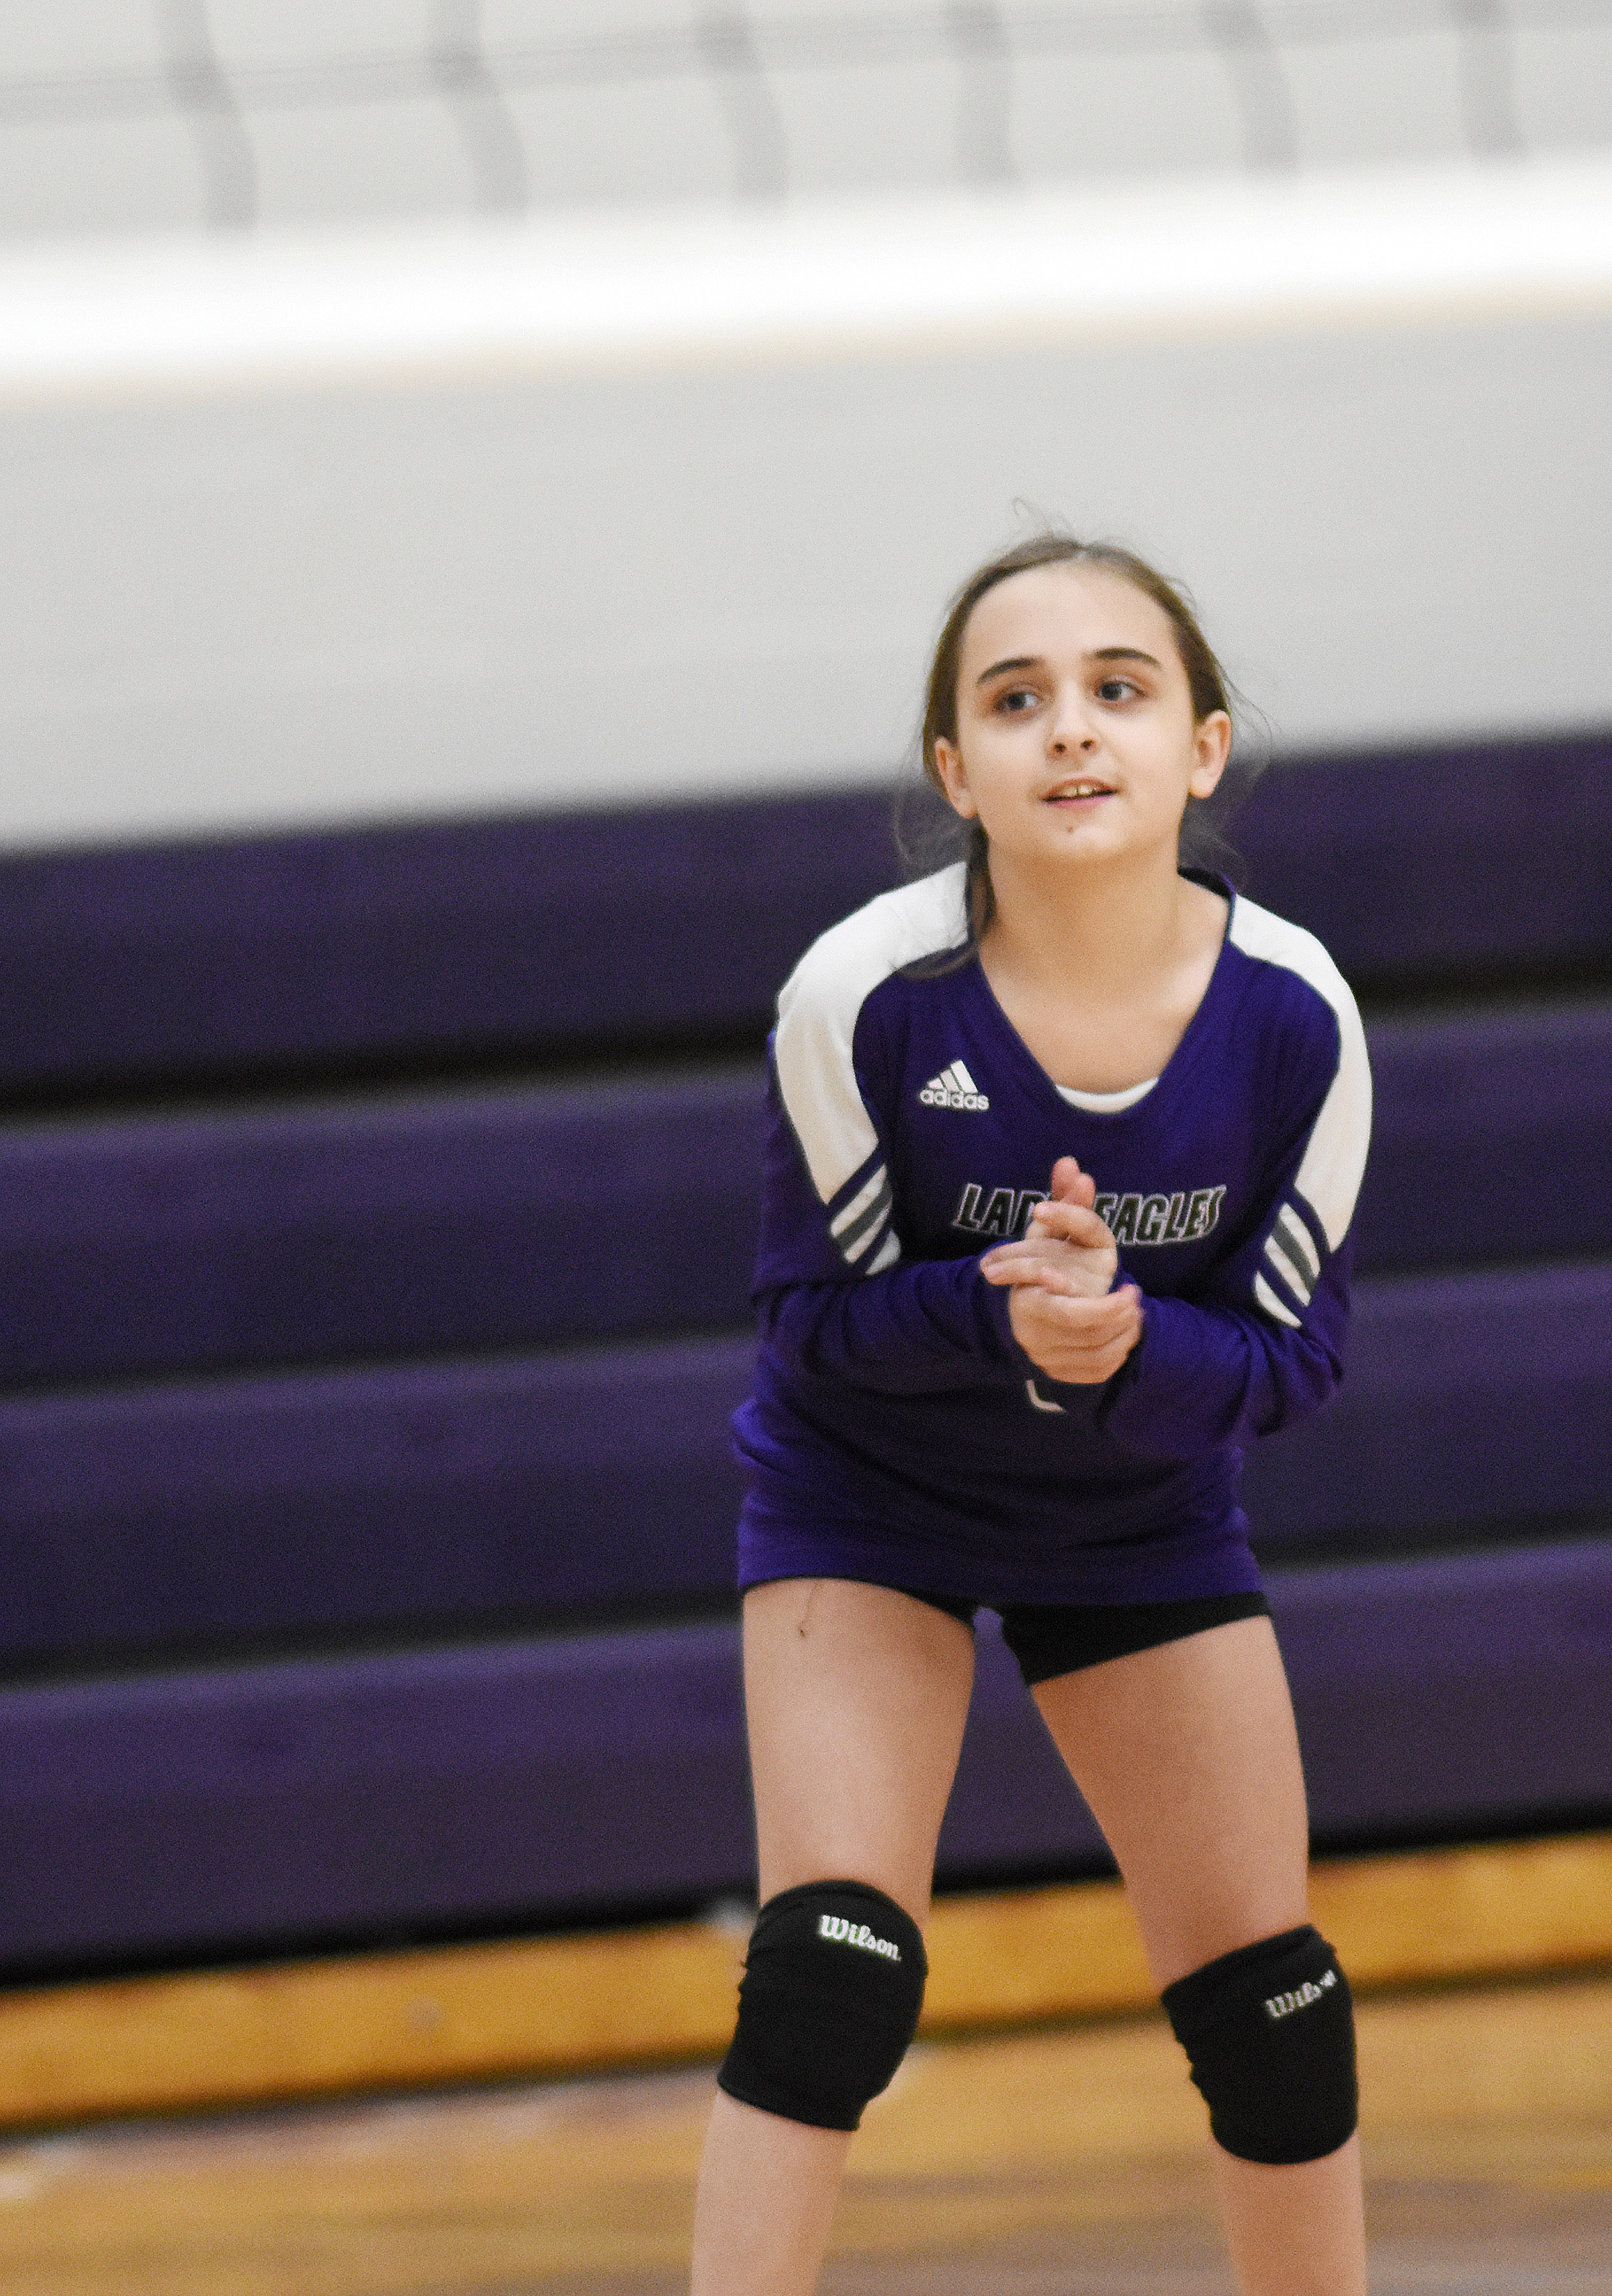 Campbellsville Elementary School fifth-grader Anna Floyd claps after a point.